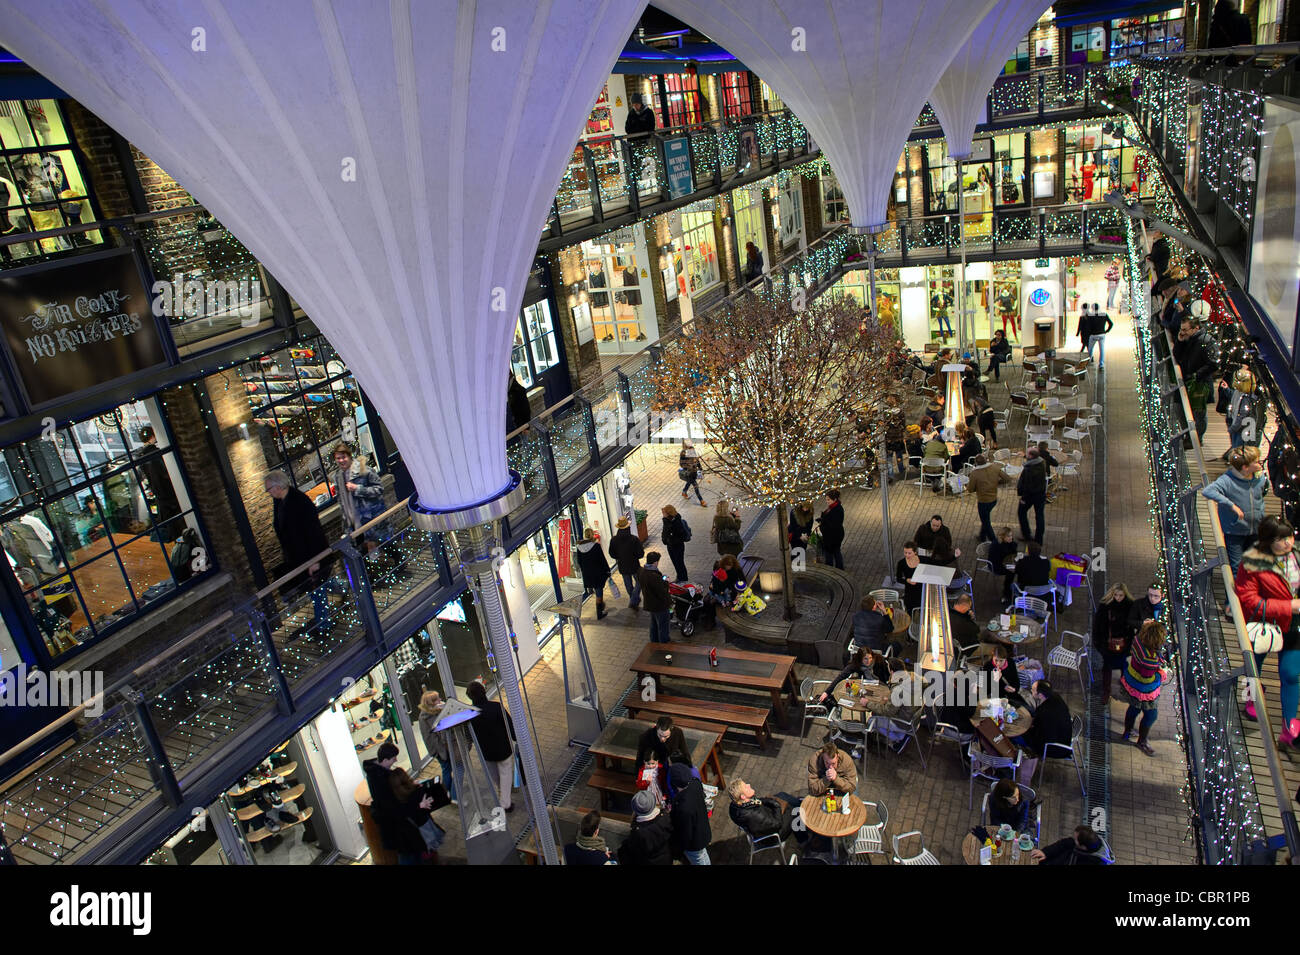 Kingly Court, off Carnaby Street, West End, London, UK, Europe, at night - Stock Image